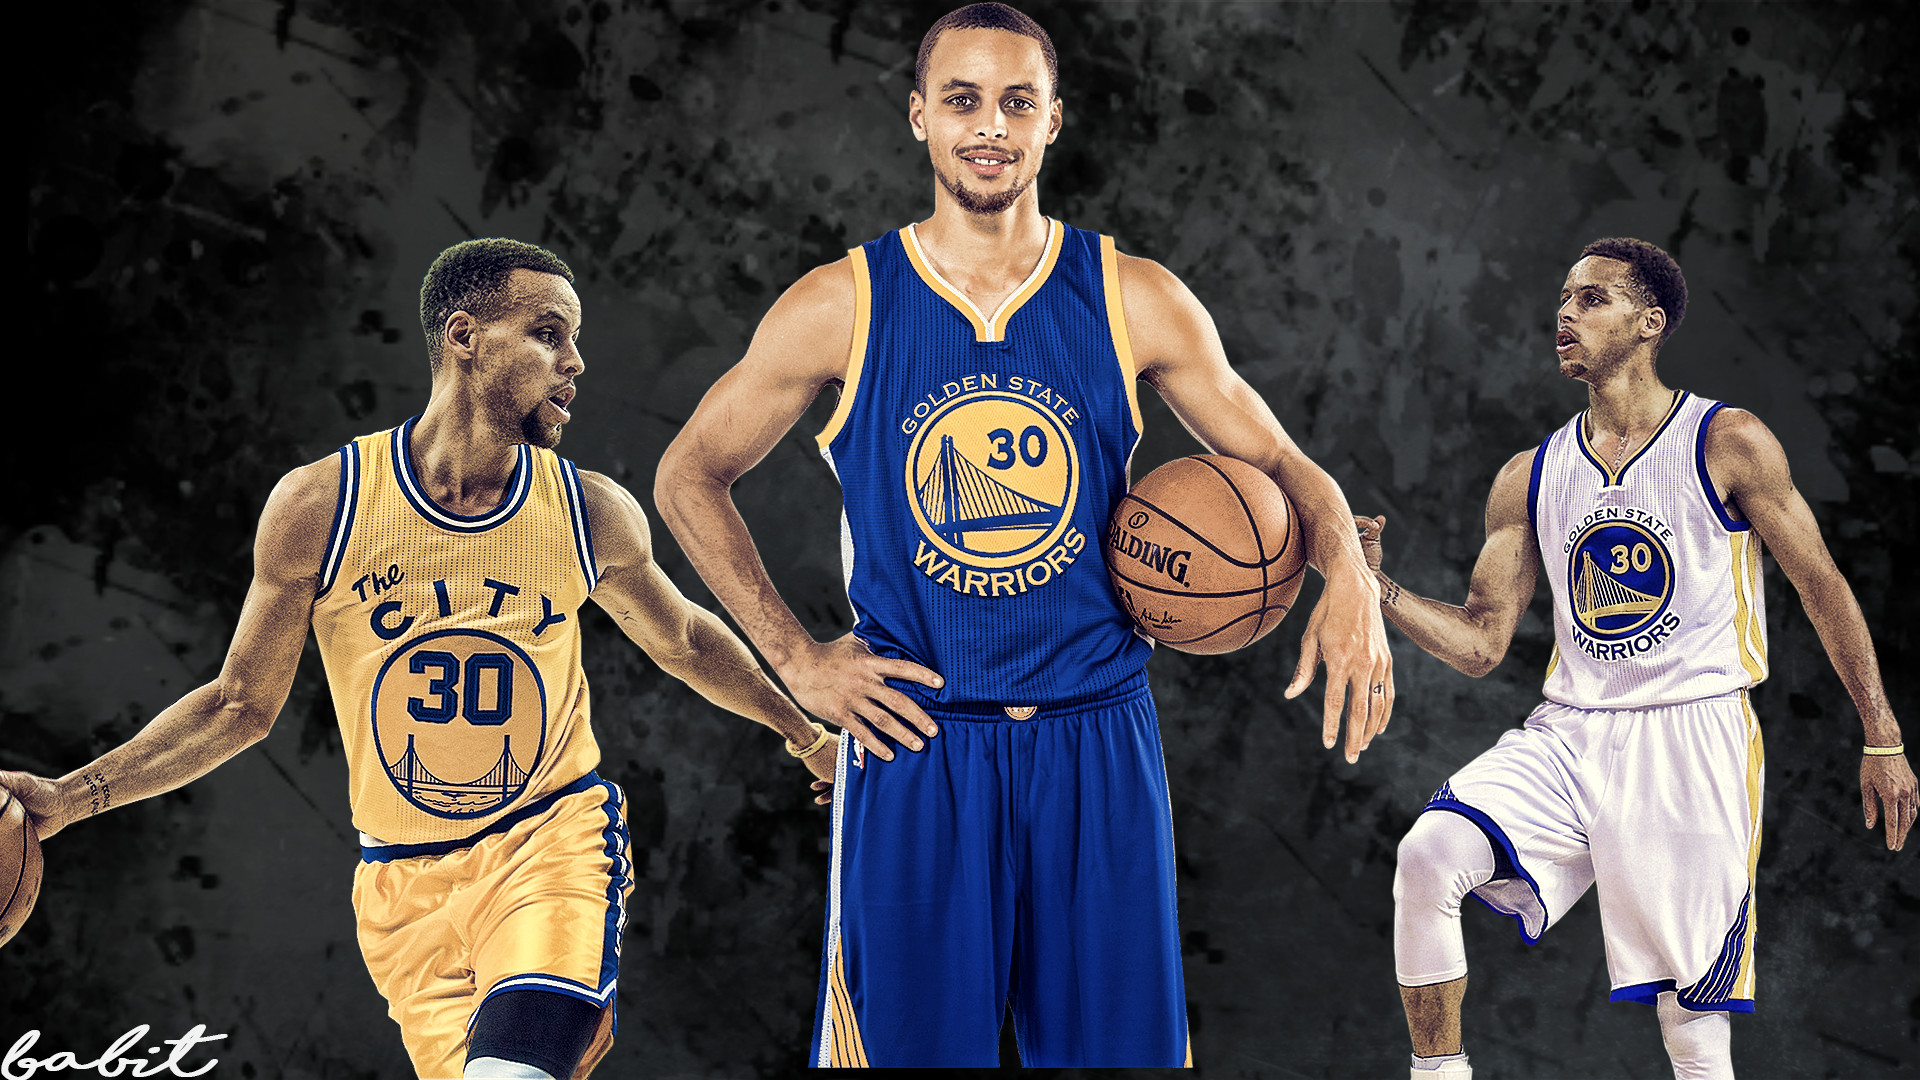 1920x1080 HD Stephen Curry Wallpapers 01 HD Stephen Curry Wallpapers 02